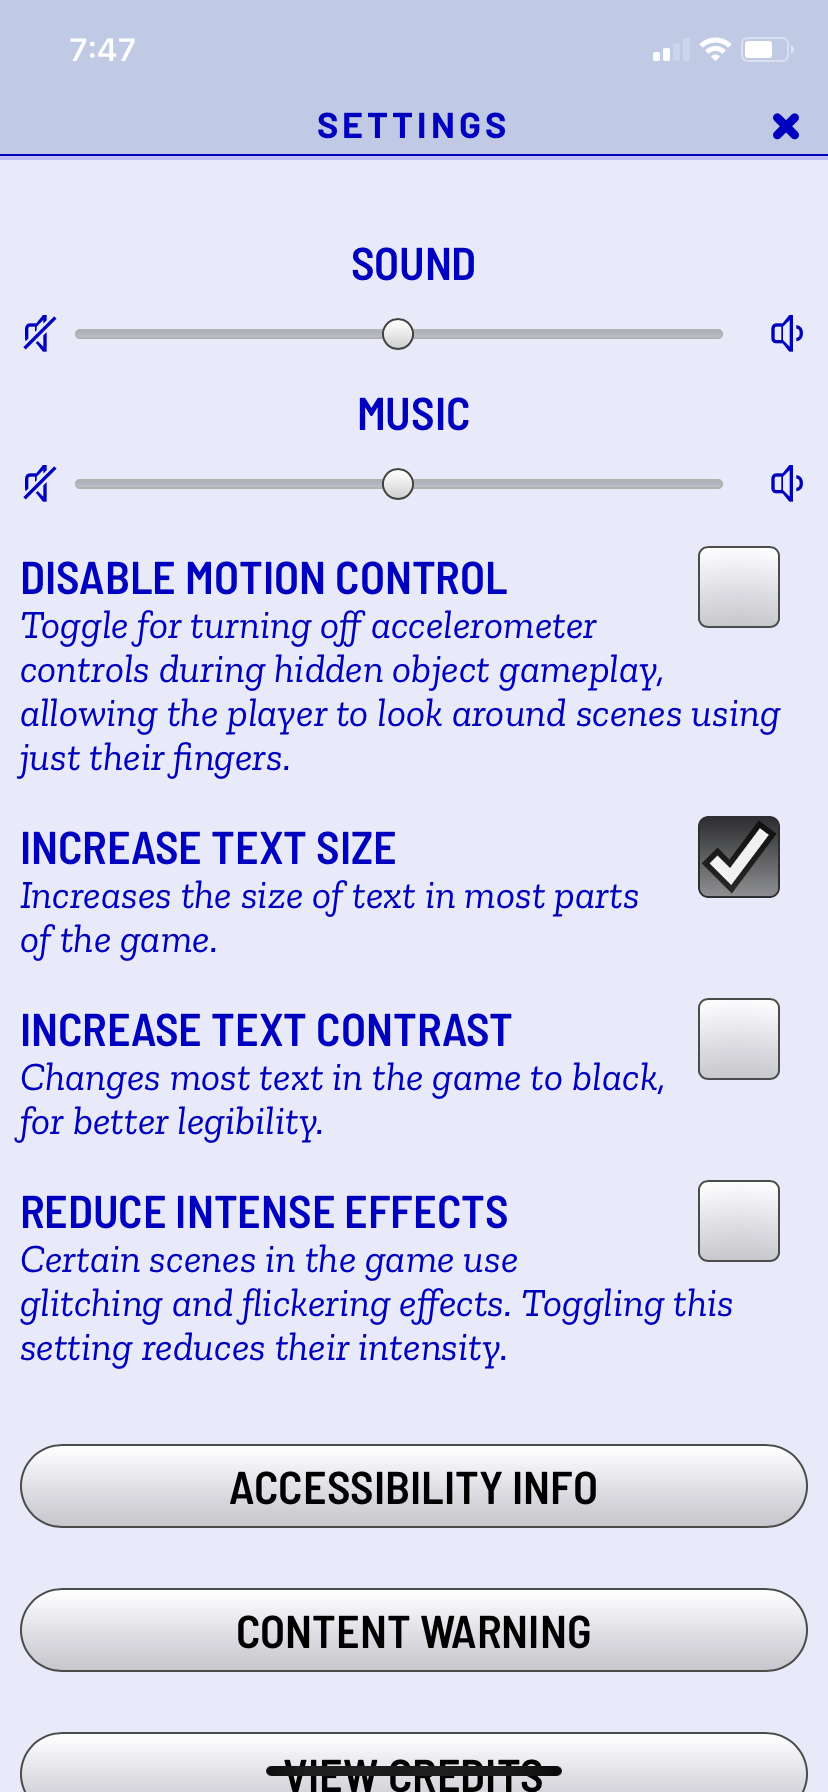 A visual representation of the in-game settings, and the impact of turning on enlarged font. The font size has doubled.